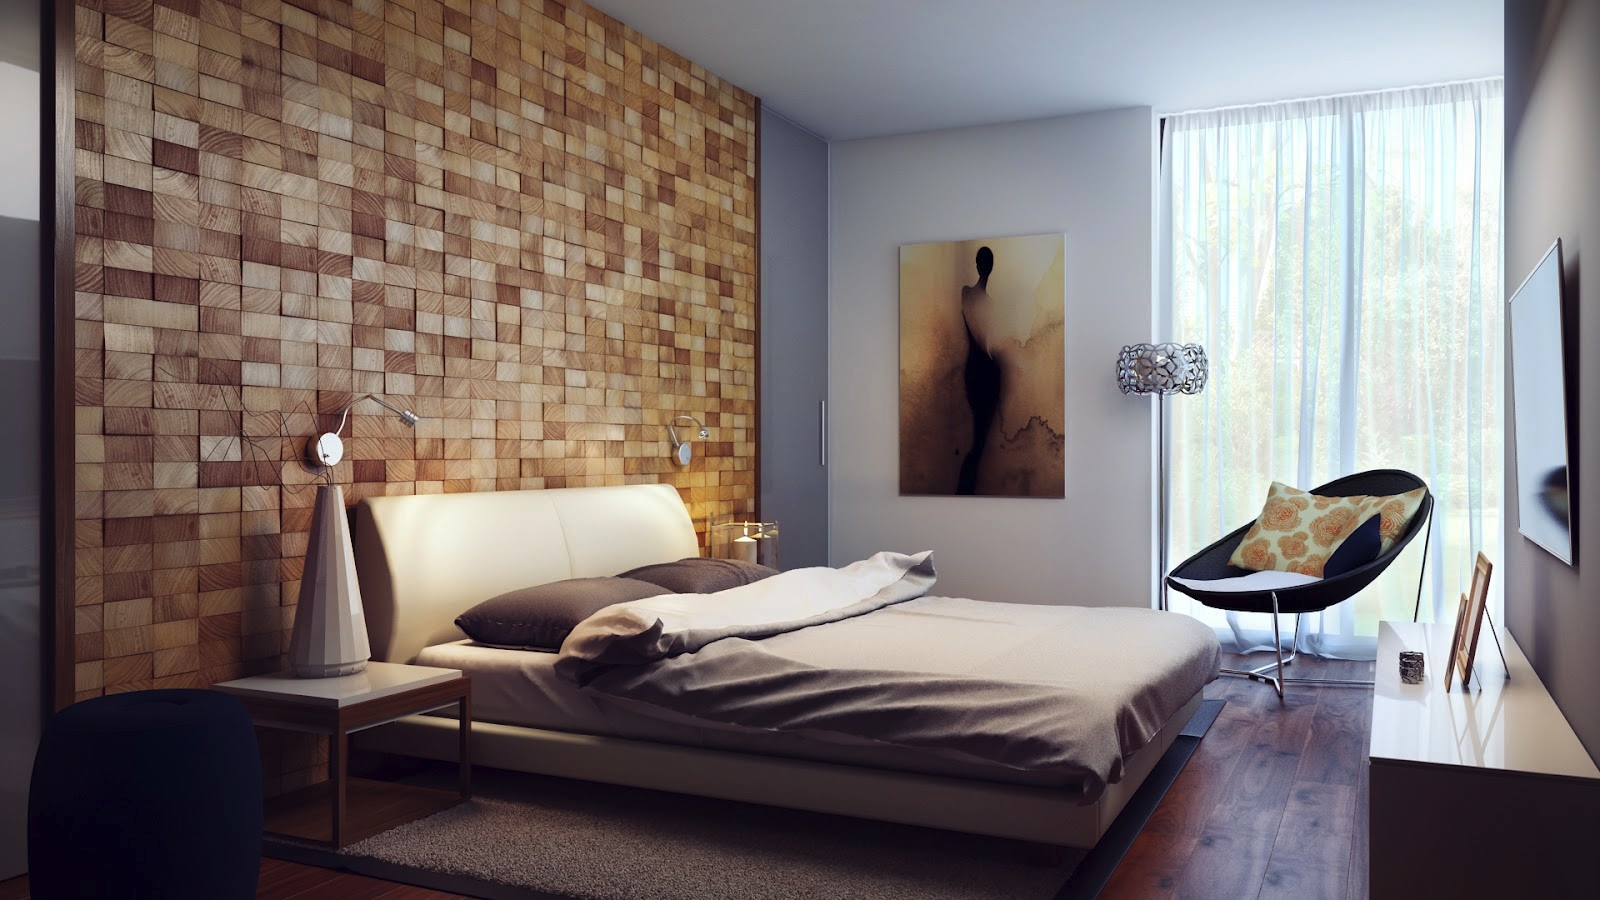 Bed Headboard and Background Design Ideas